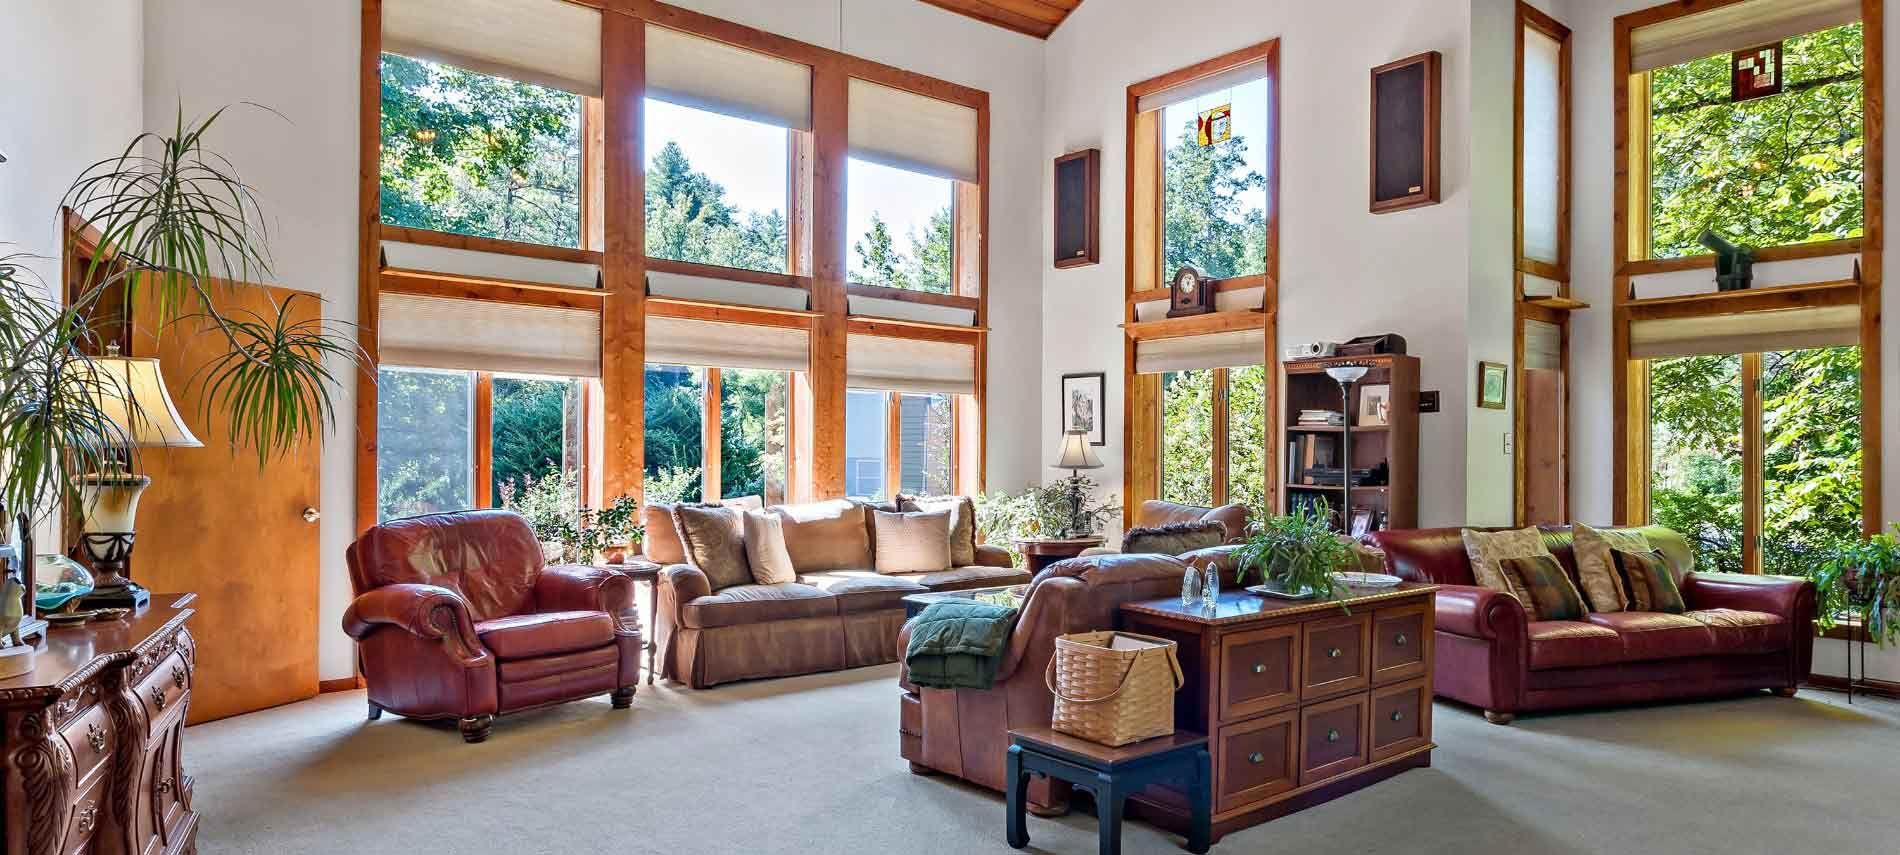 Spacious interior sitting area with multiple couches and love seats underneath high ceiling with tall windows allowing in sunlight.